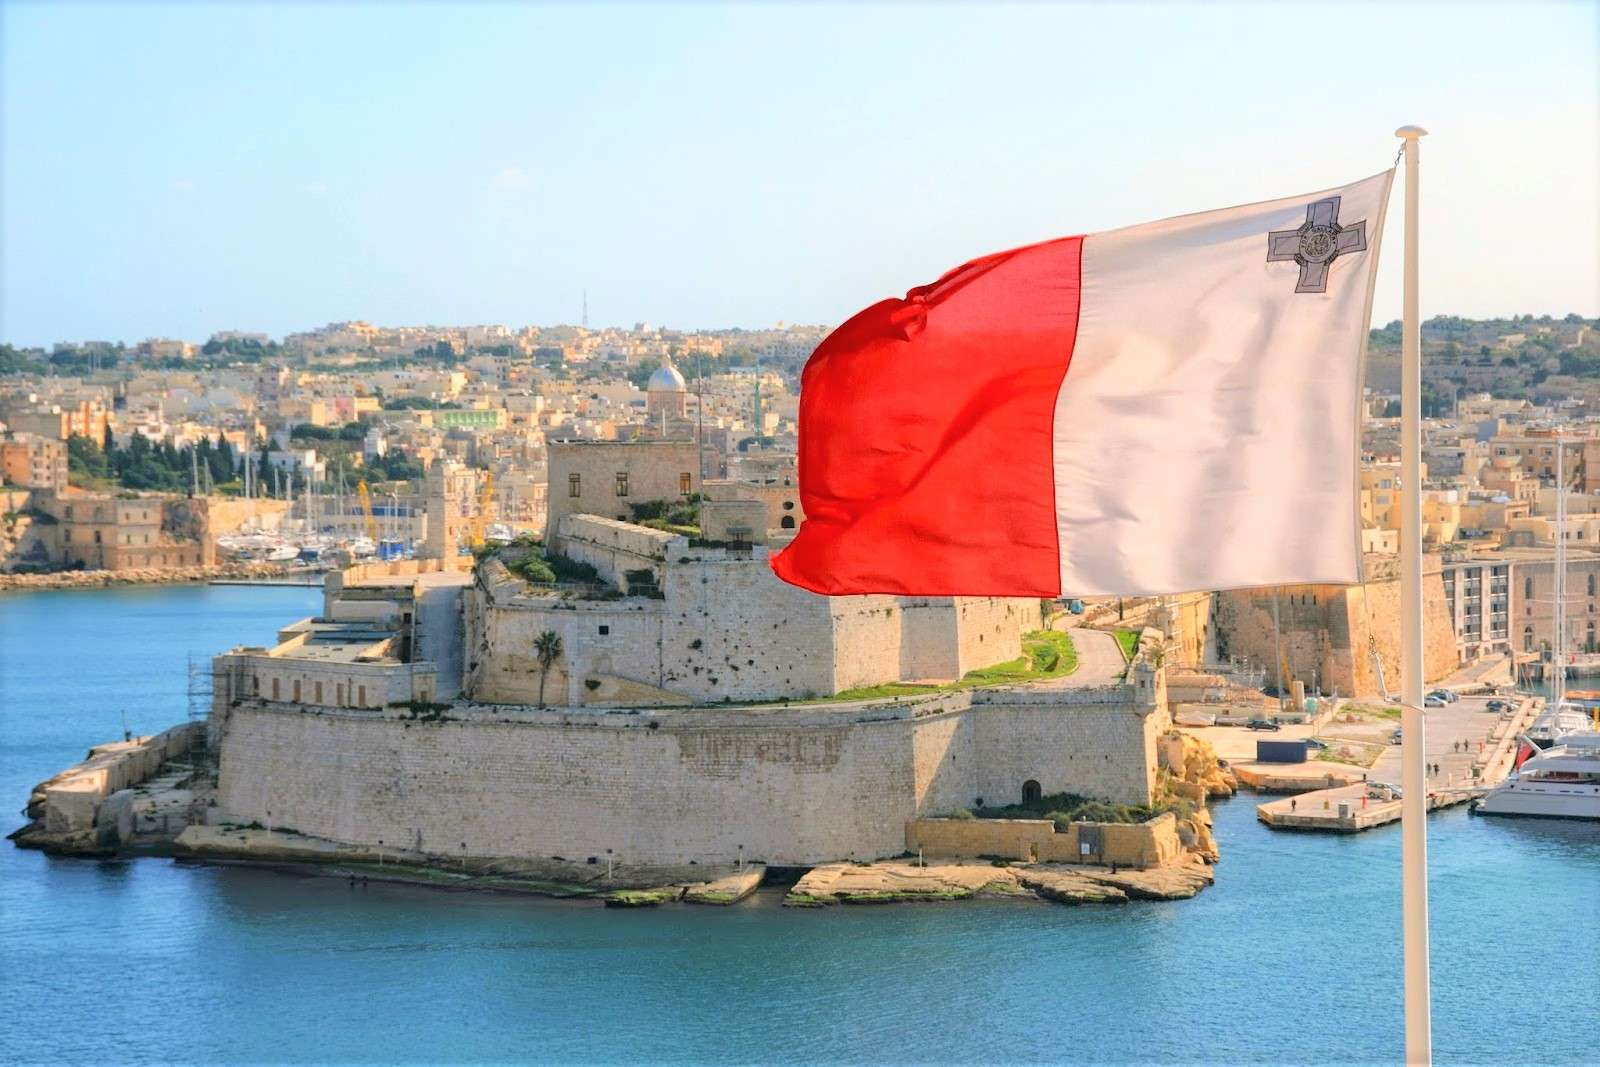 How to buy bitcoin from malta